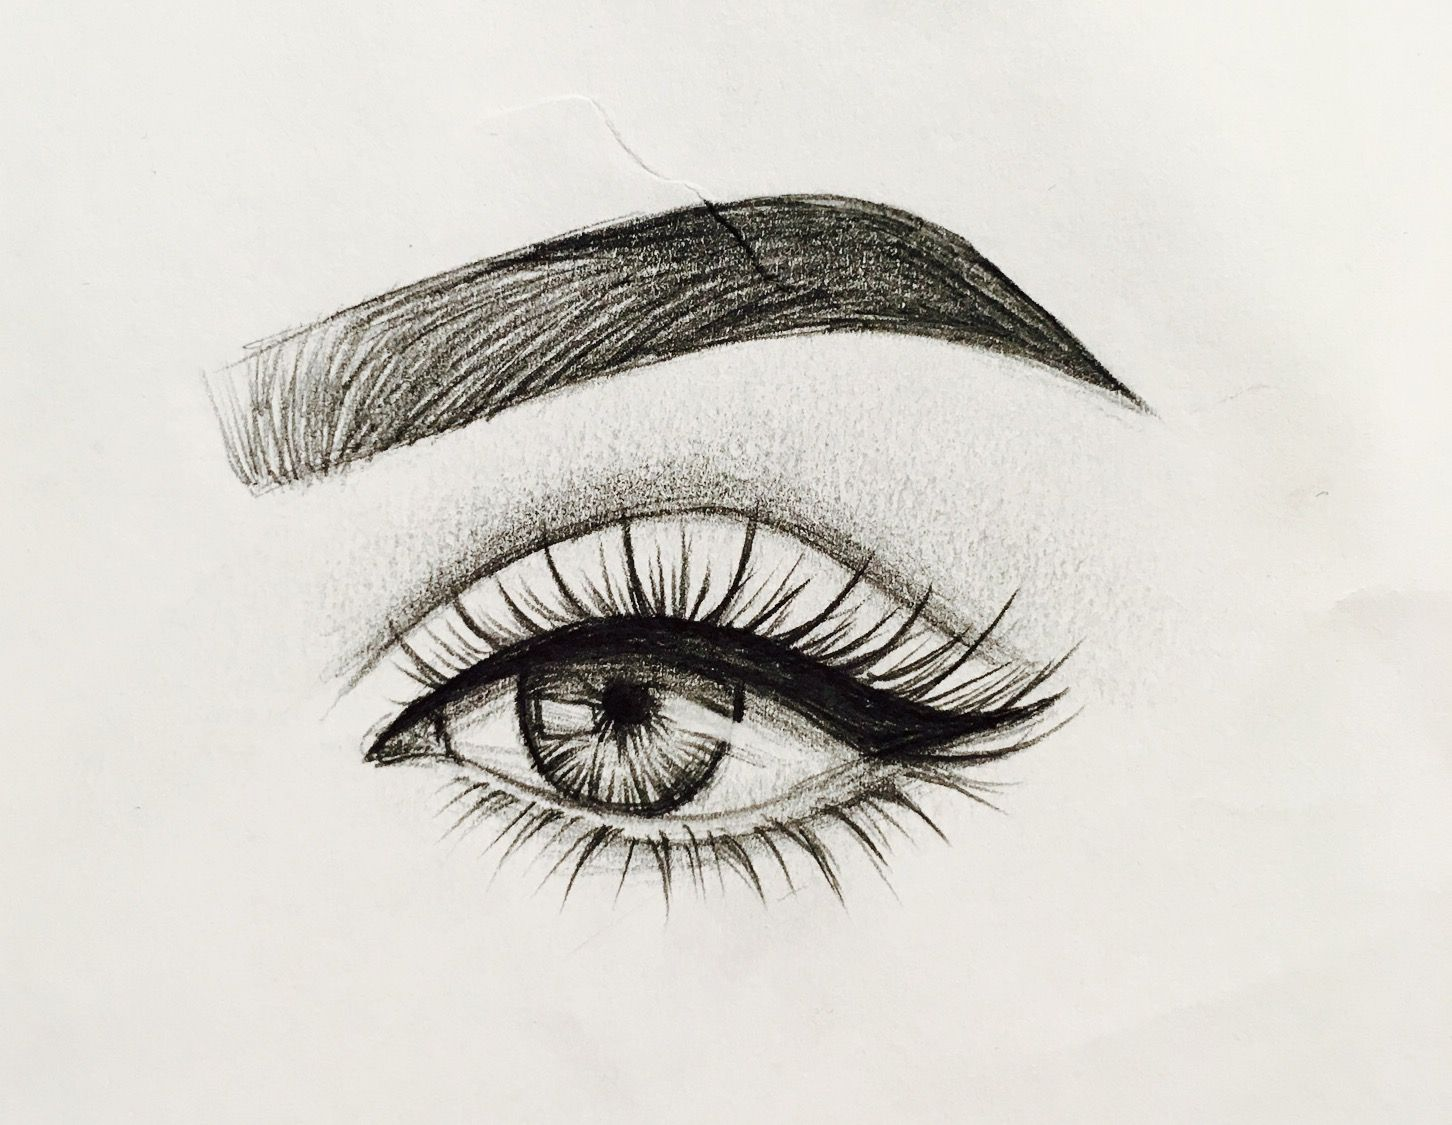 Sketches of eyes eye sketch sketches of love sketches of people art